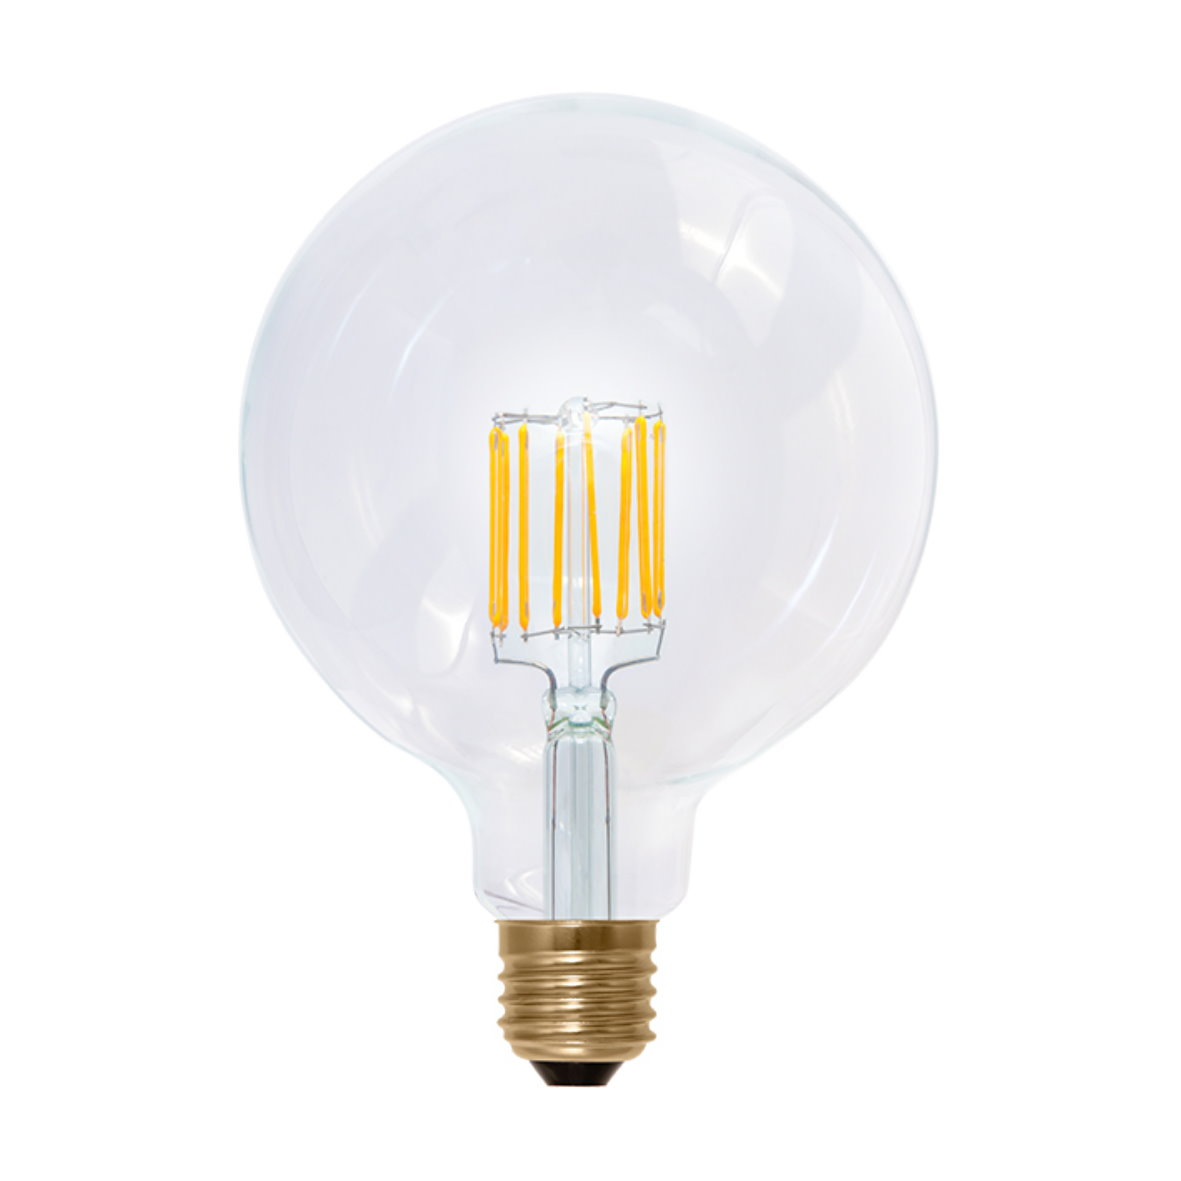 segula cob led leuchtmittel filament edison dimmbar dimmable birne bulb candle ebay